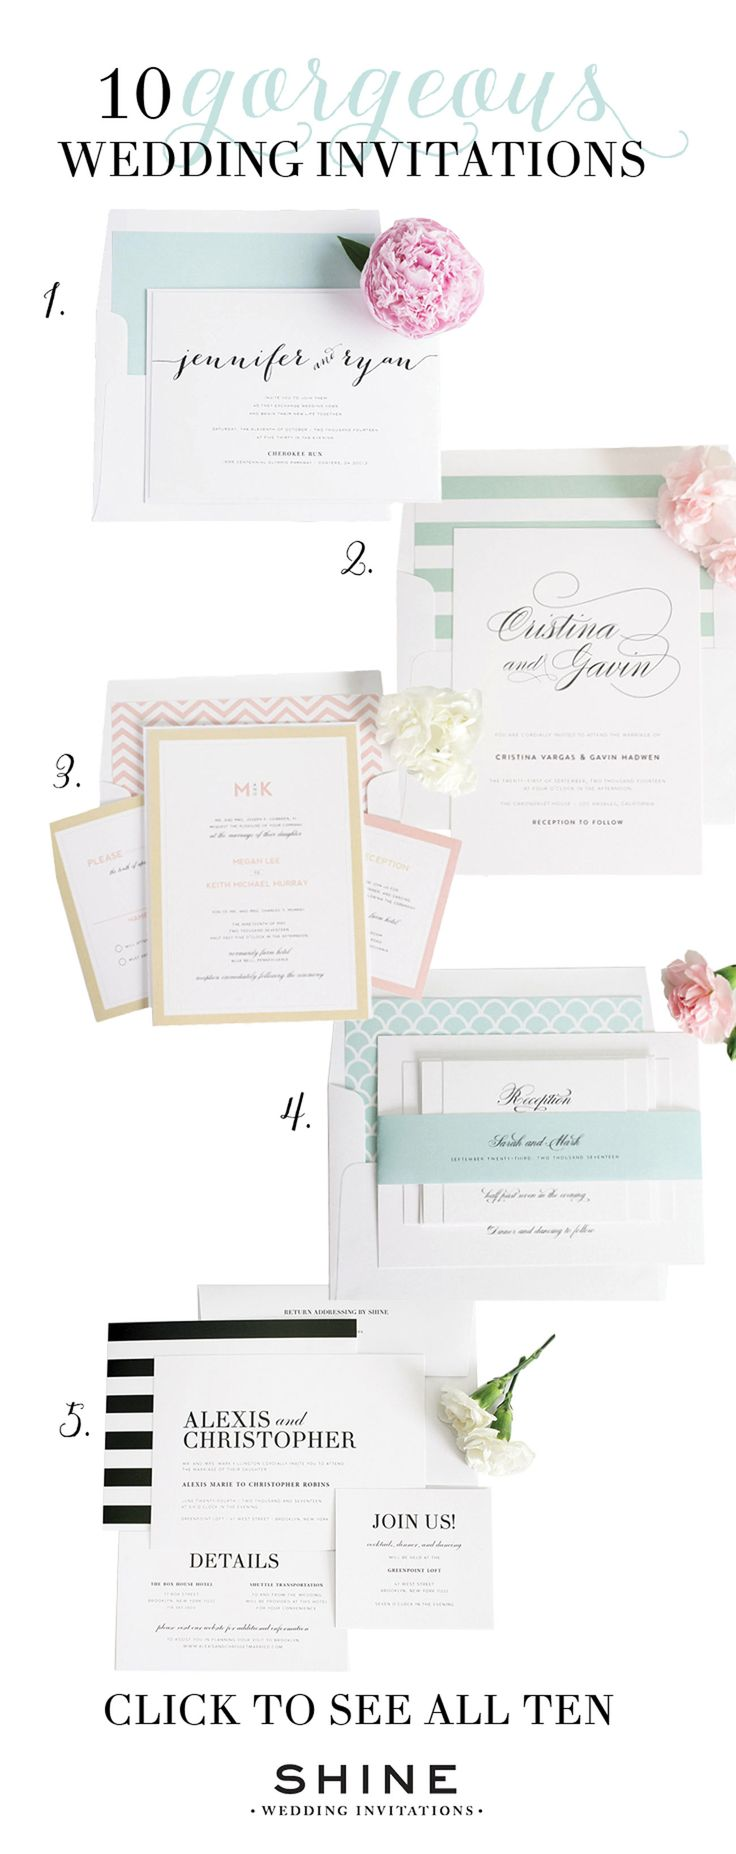 Looking for the perfect wedding invite? We complied a list of our Top 10 most popular wedding invitations! | Shine Wedding Invitations